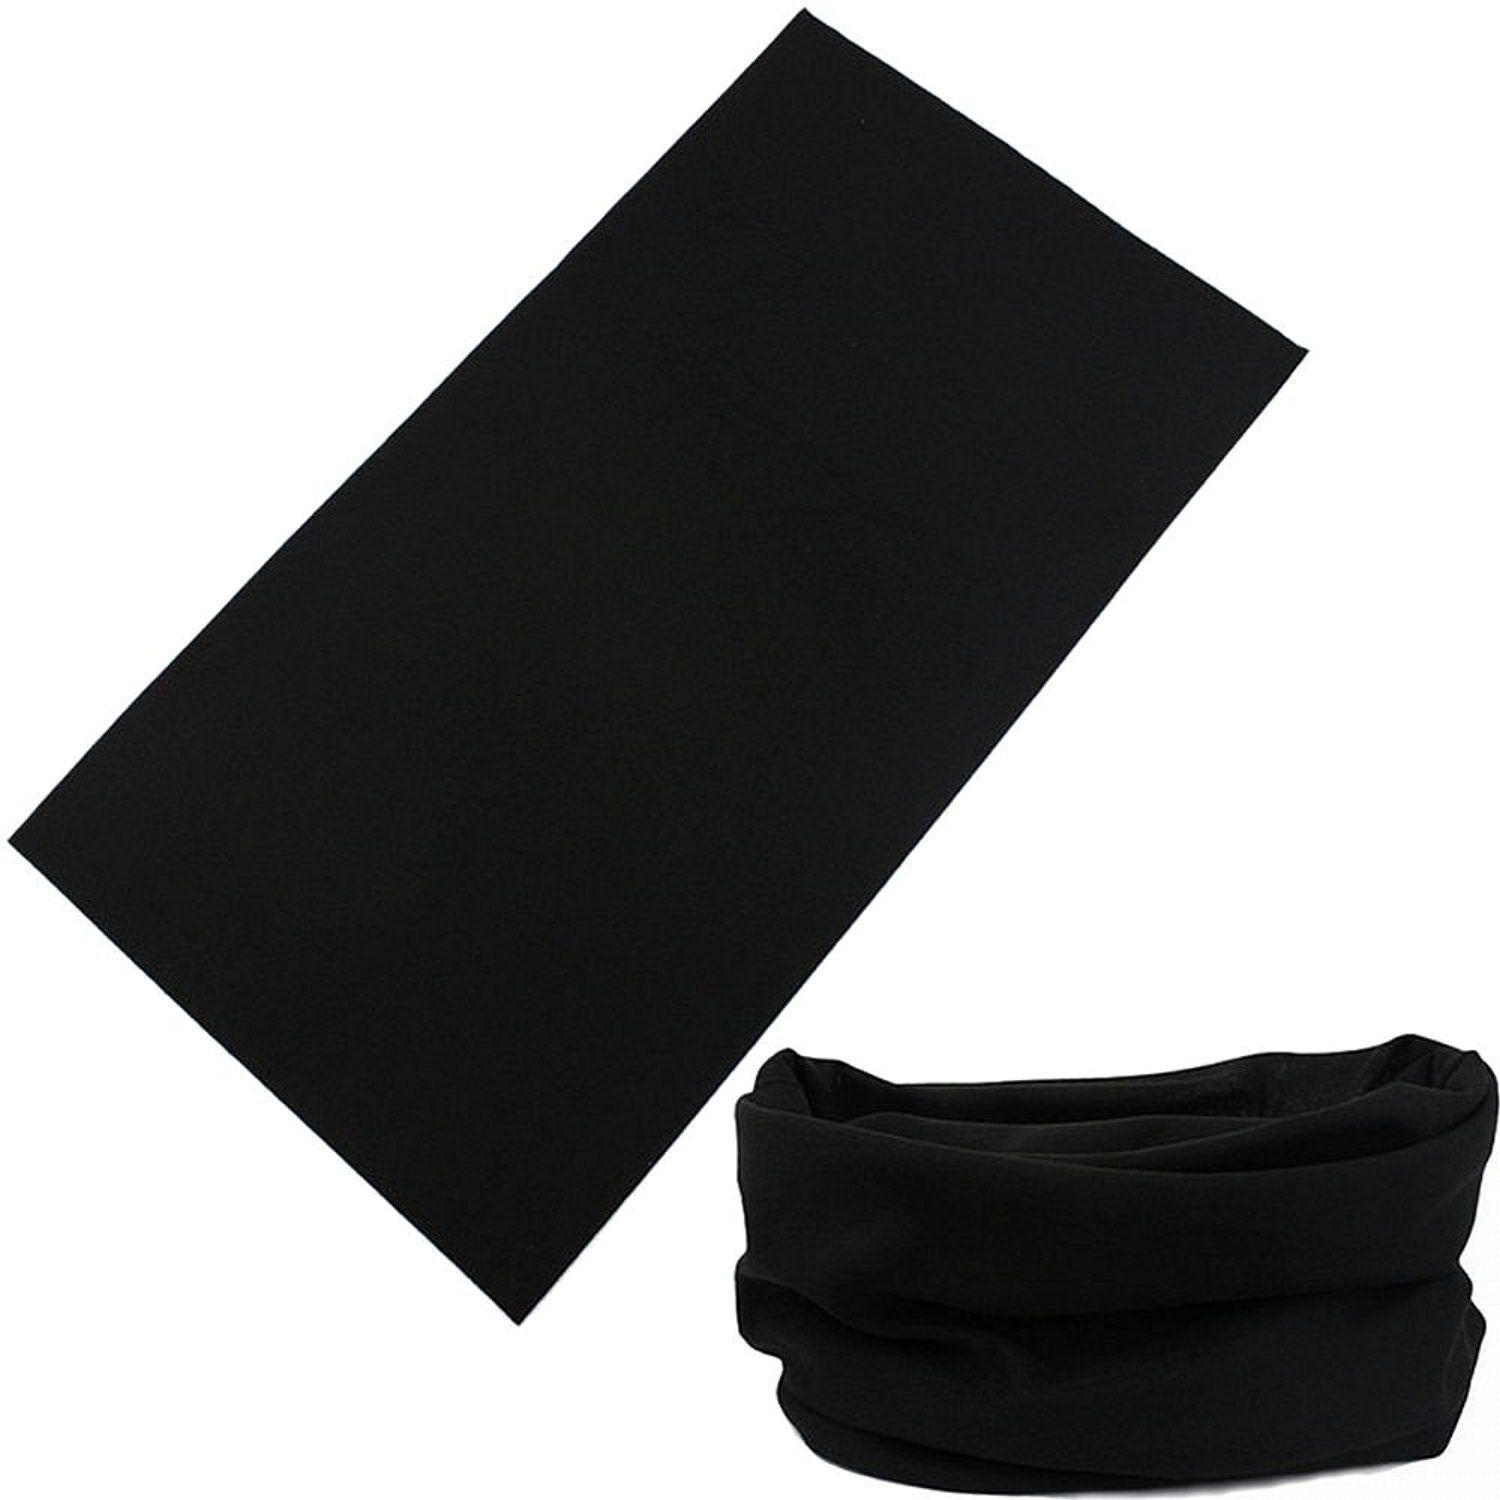 Headwear 16in1 Headband to Protect You from the Sun